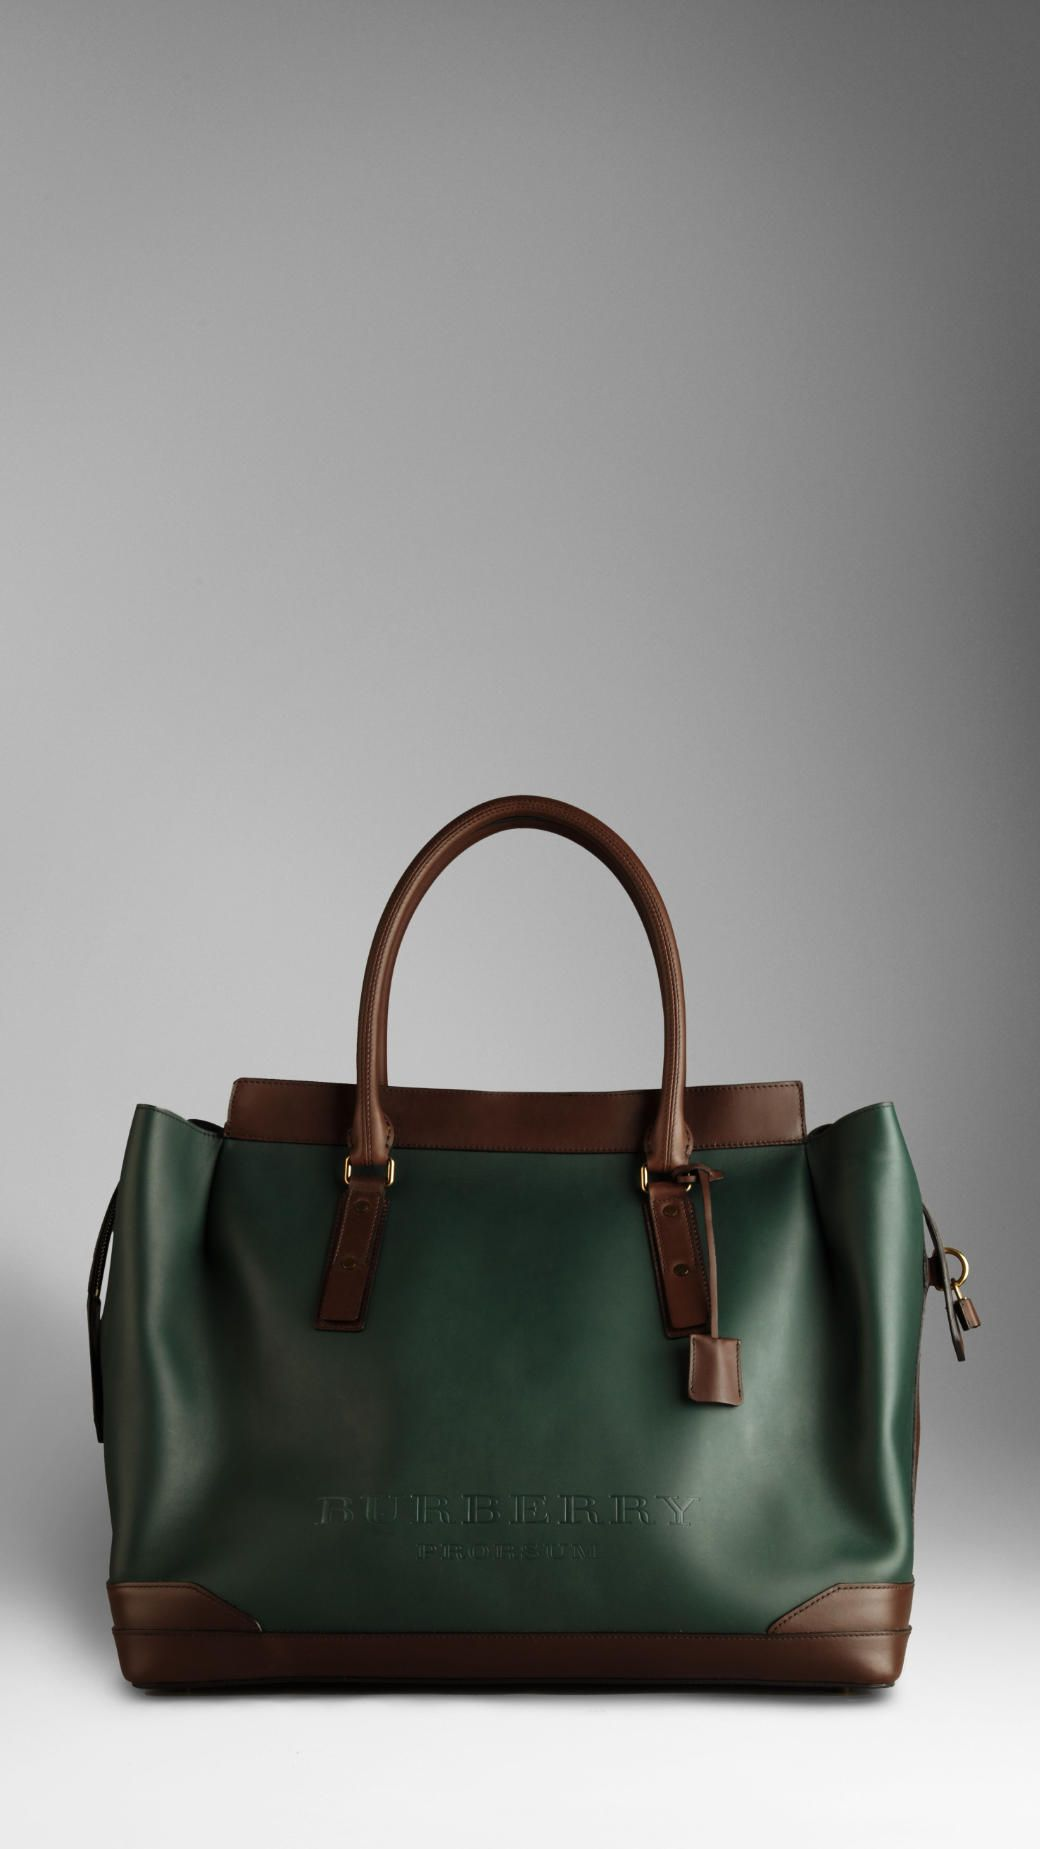 Burberry | Burberry Prorsum men's oversize leather tote bag ...